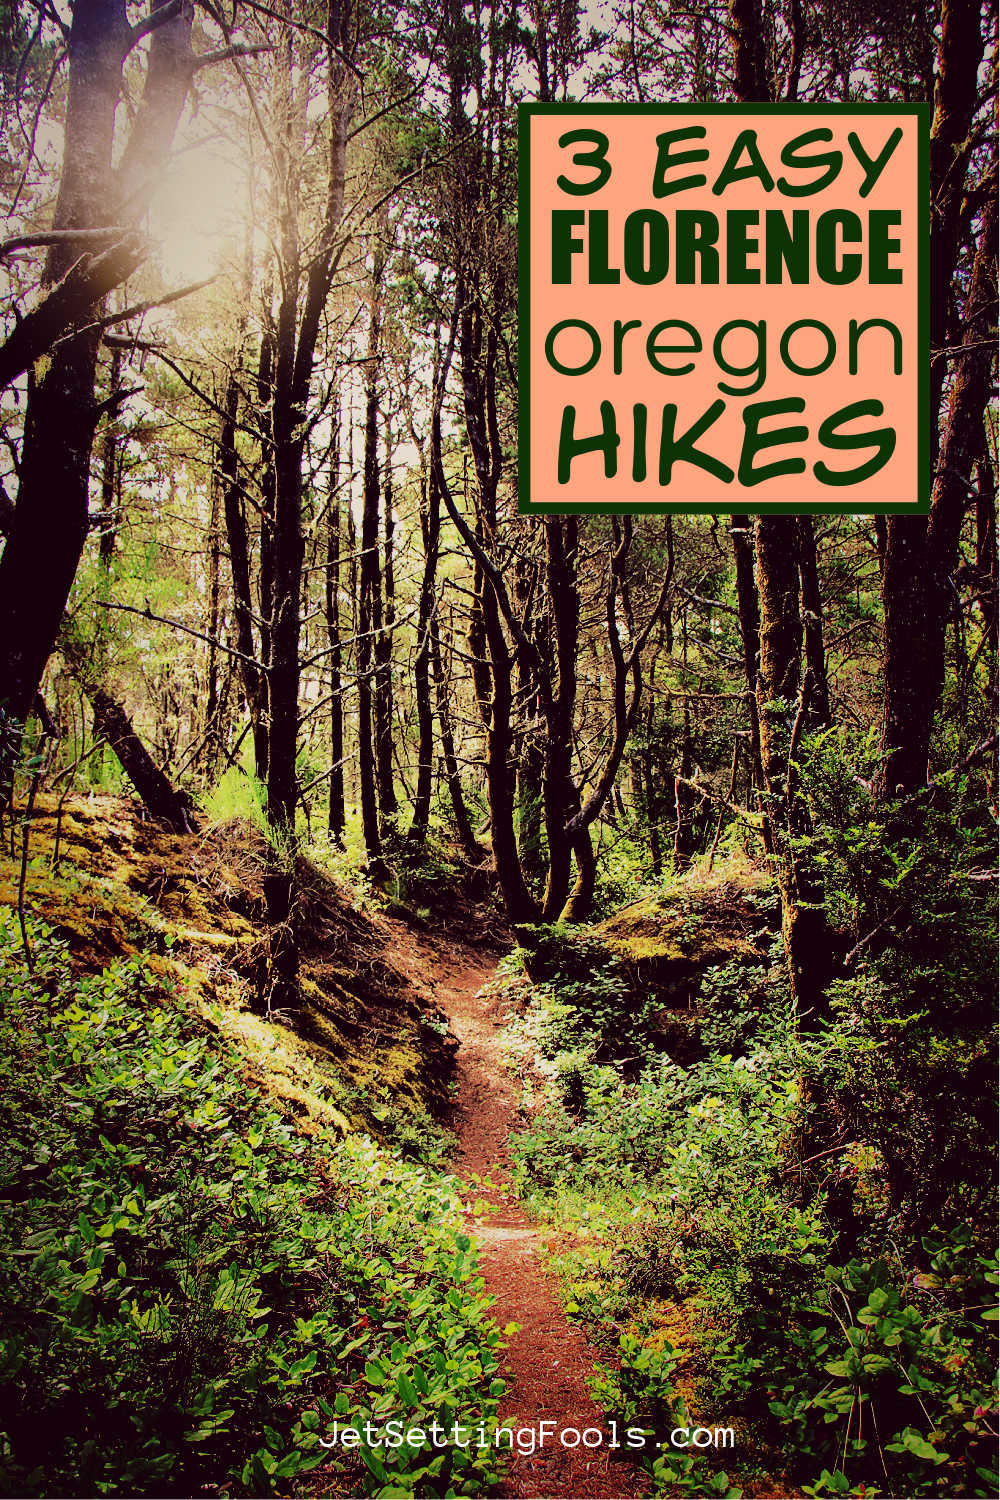 3 Easy Florence, Oregon Hikes by JetSettingFools.com